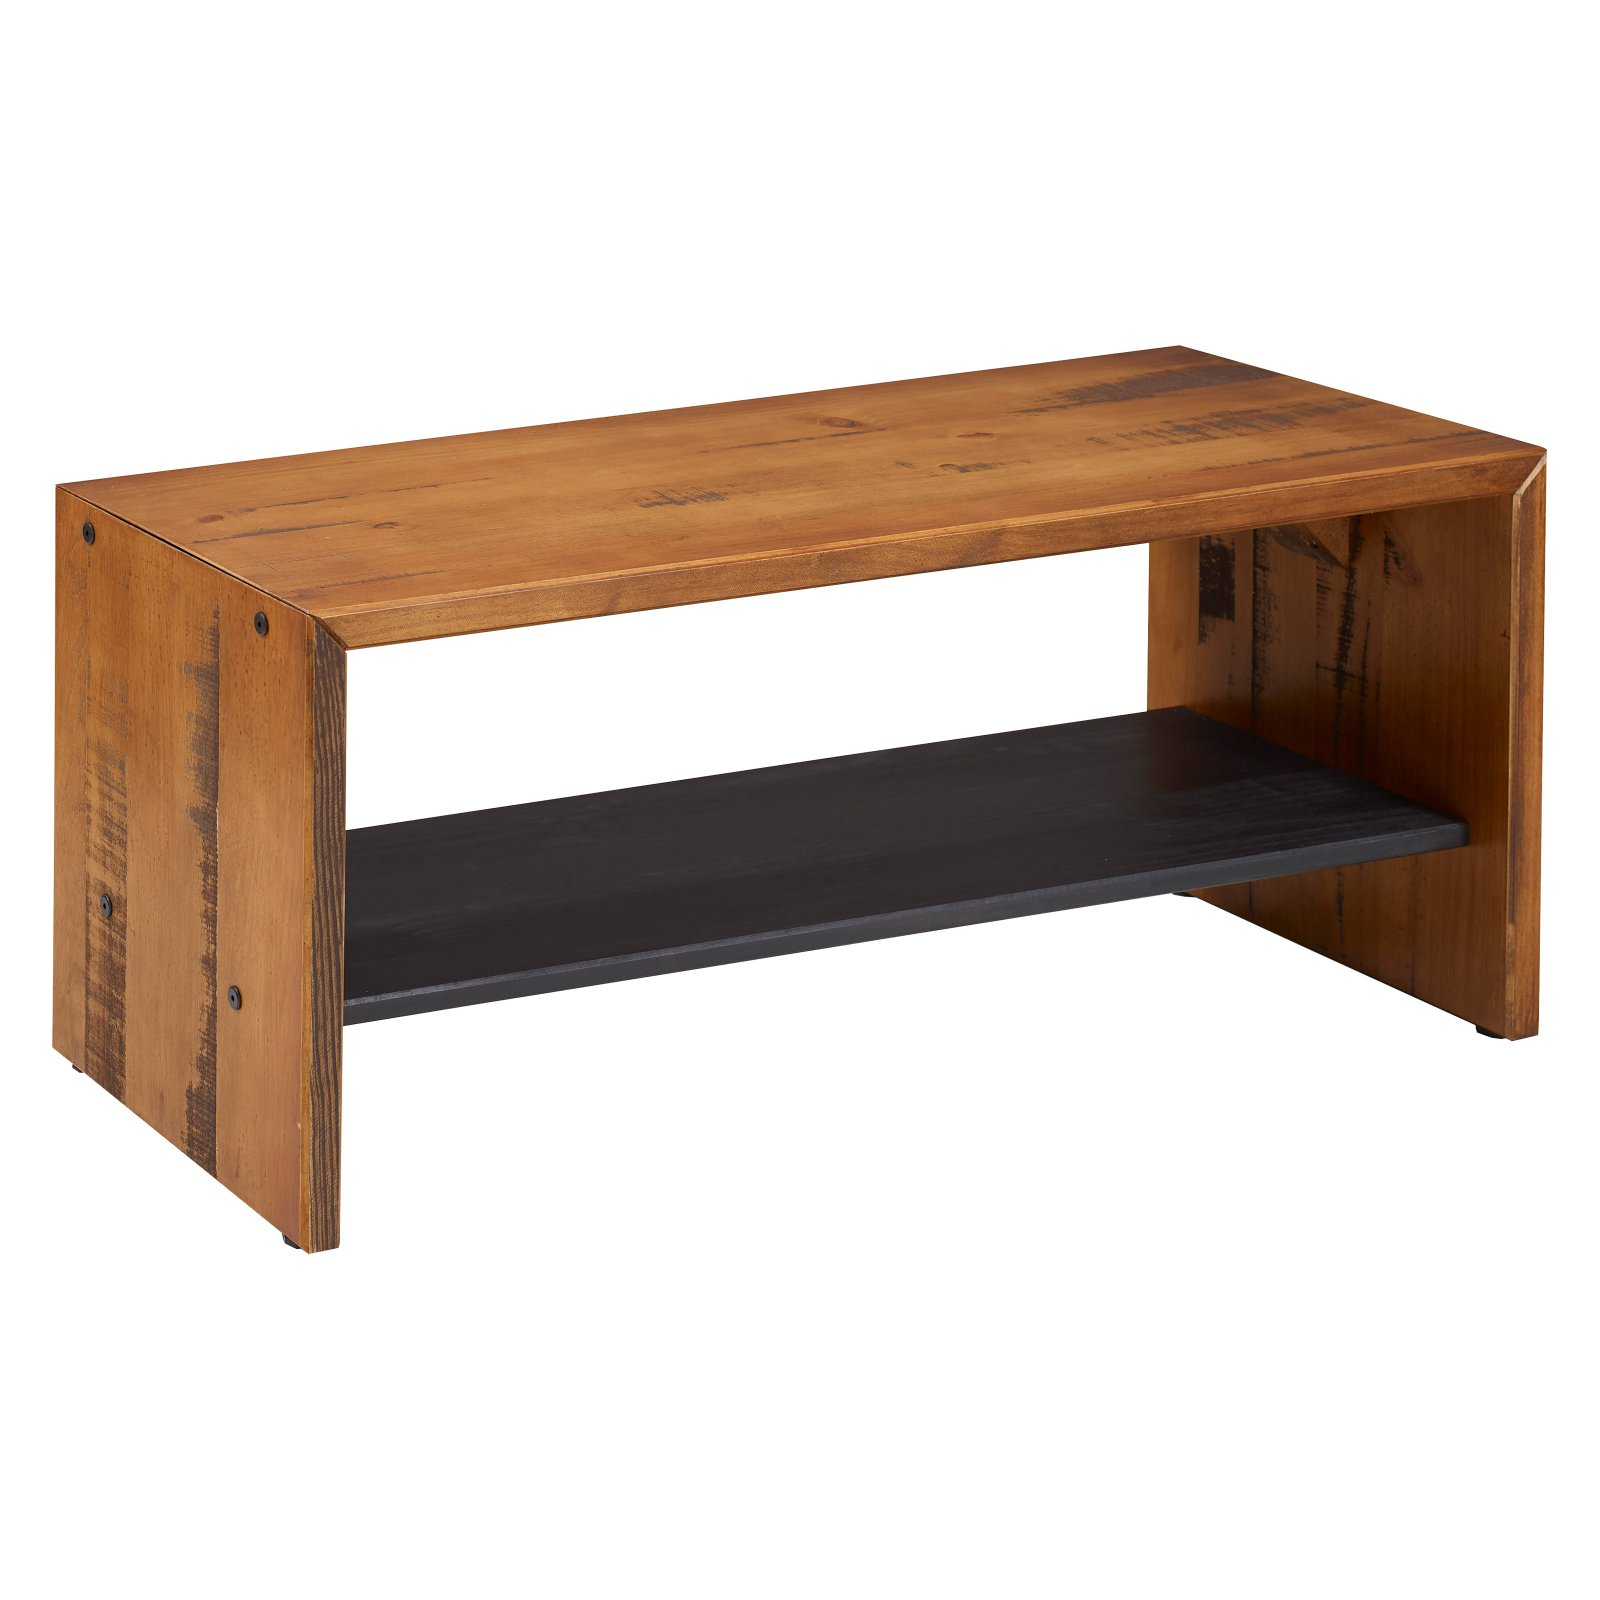 Walker Edison Rustic Reclaimed Wood Entry Bench with Shelf